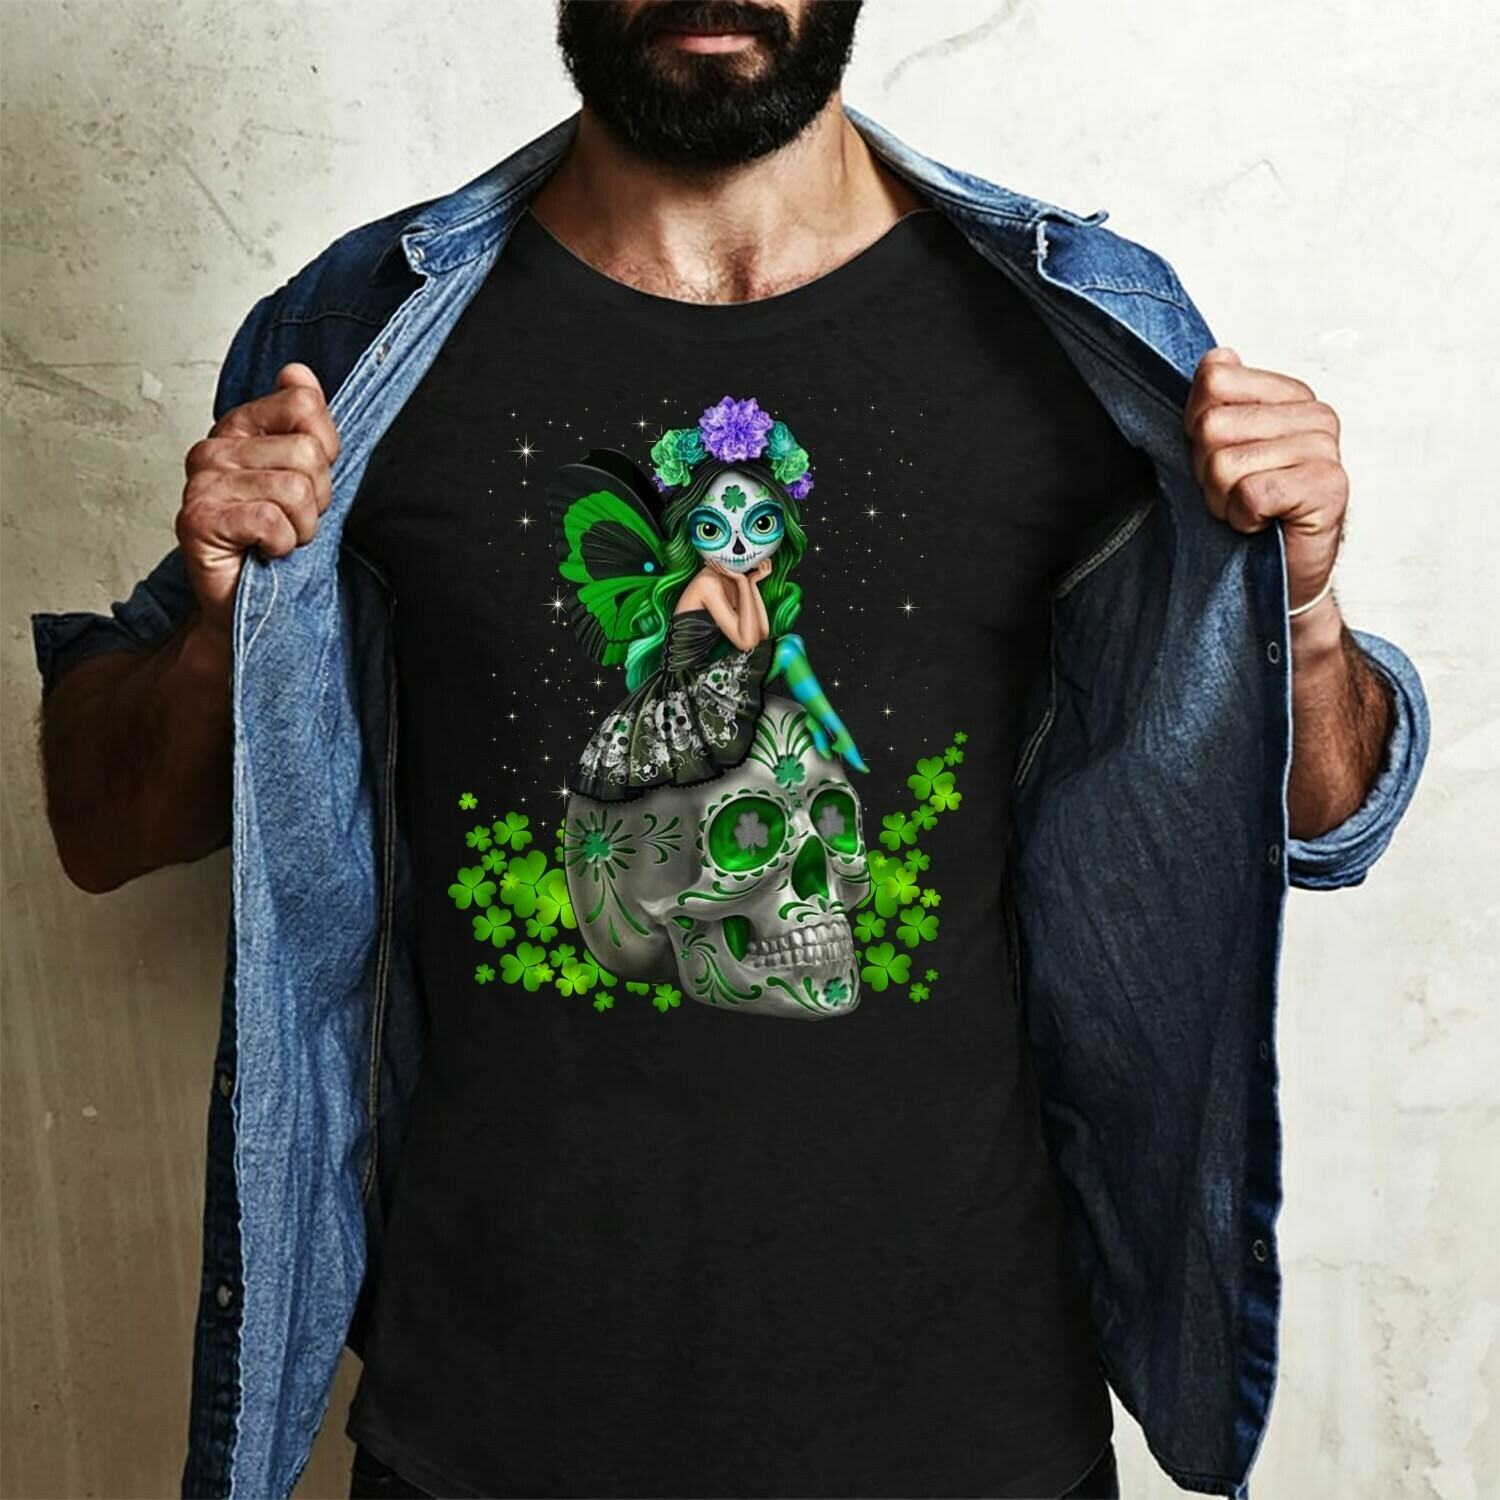 Sugar Skull Sitting Patrick,Day Of The Dead Fashion,Sugar Skull Flower Crown,Women's Saint Paddy's Patricks day outfit  T-Shirt Hoodie Sweatshirt Sweater Tee Kids Youth Gifts Jolly Family Gifts